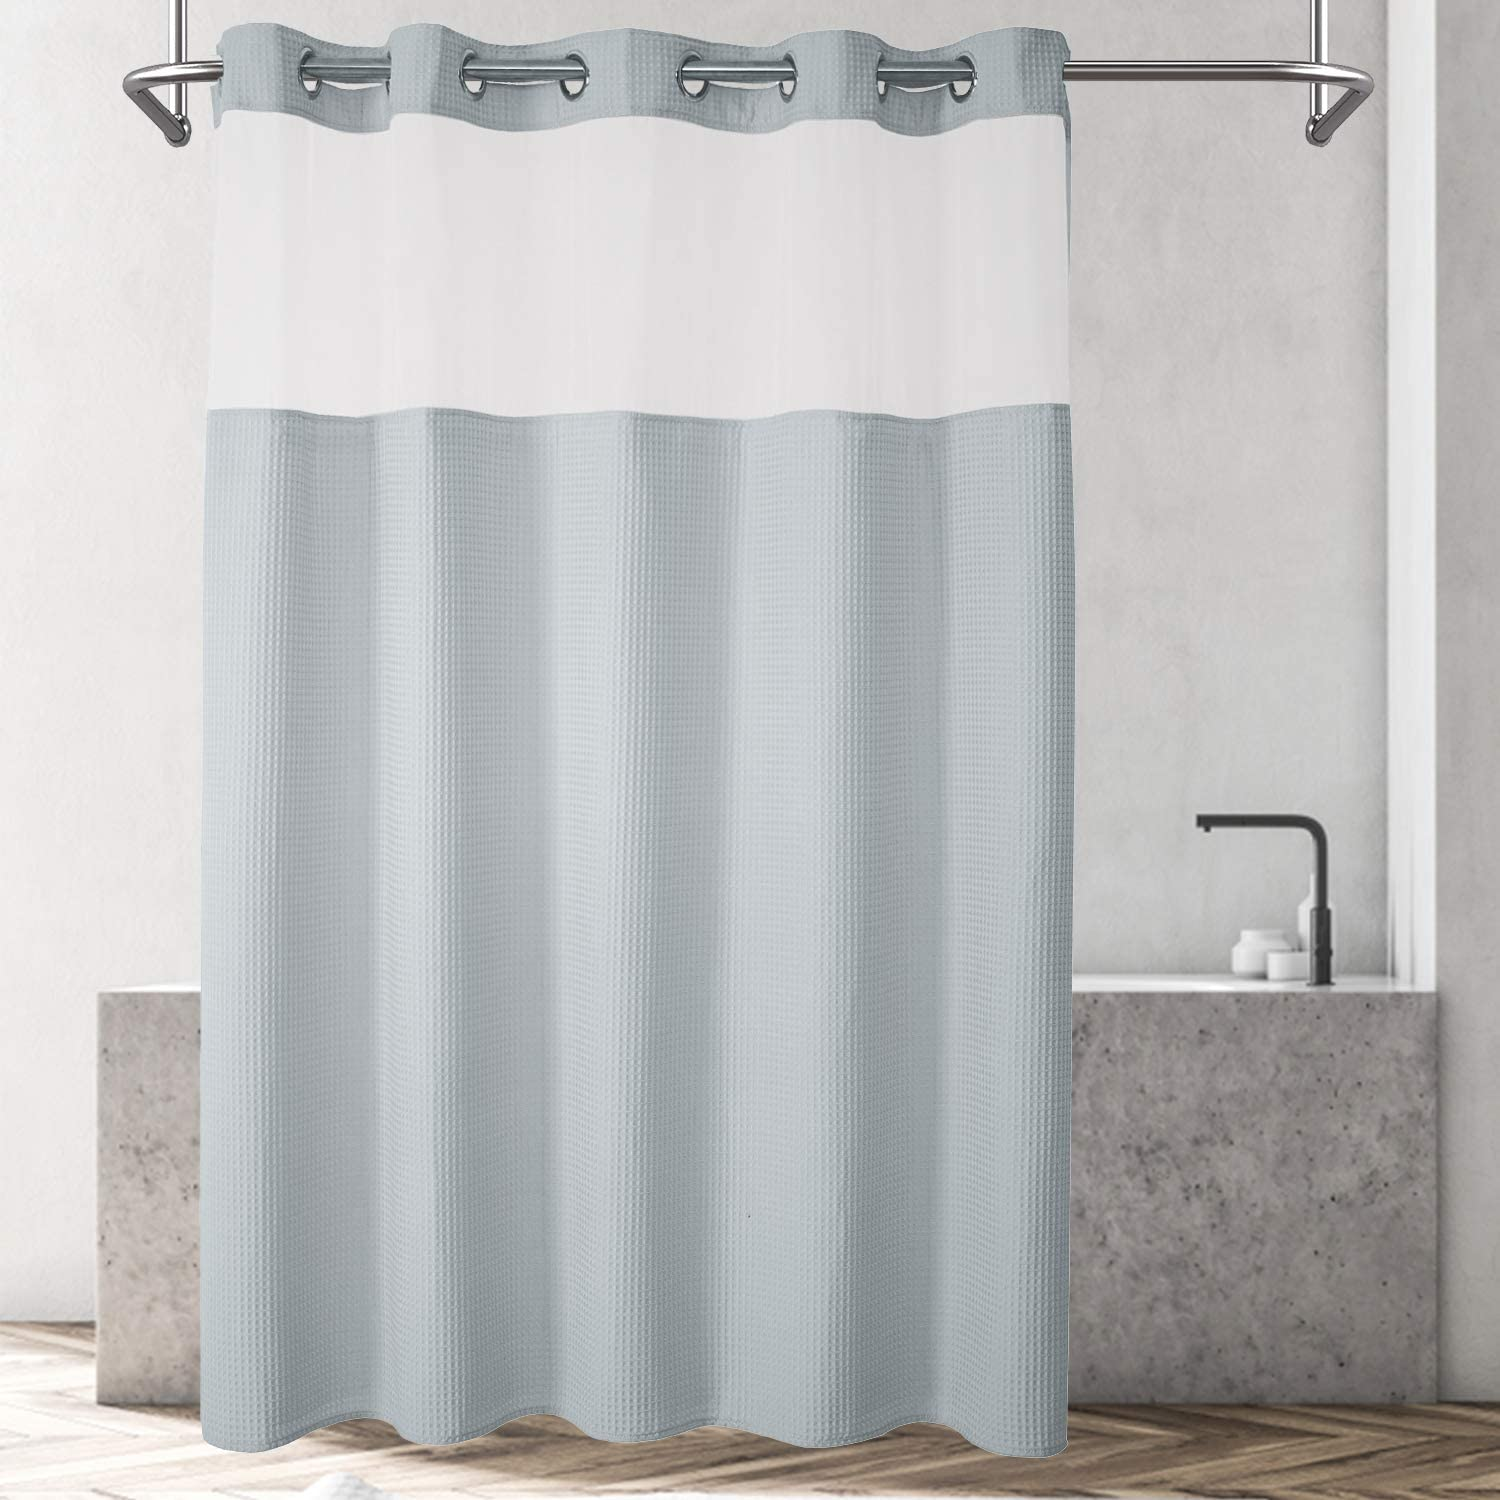 River Dream Waffle Weave Fabric Shower Curtain No Hooks Needed, Cotton Blend, with Snap-in Repalcement Liner - Hotel Grade, Water Repellent, Machine Washable - 71x74, Lake Wanaka